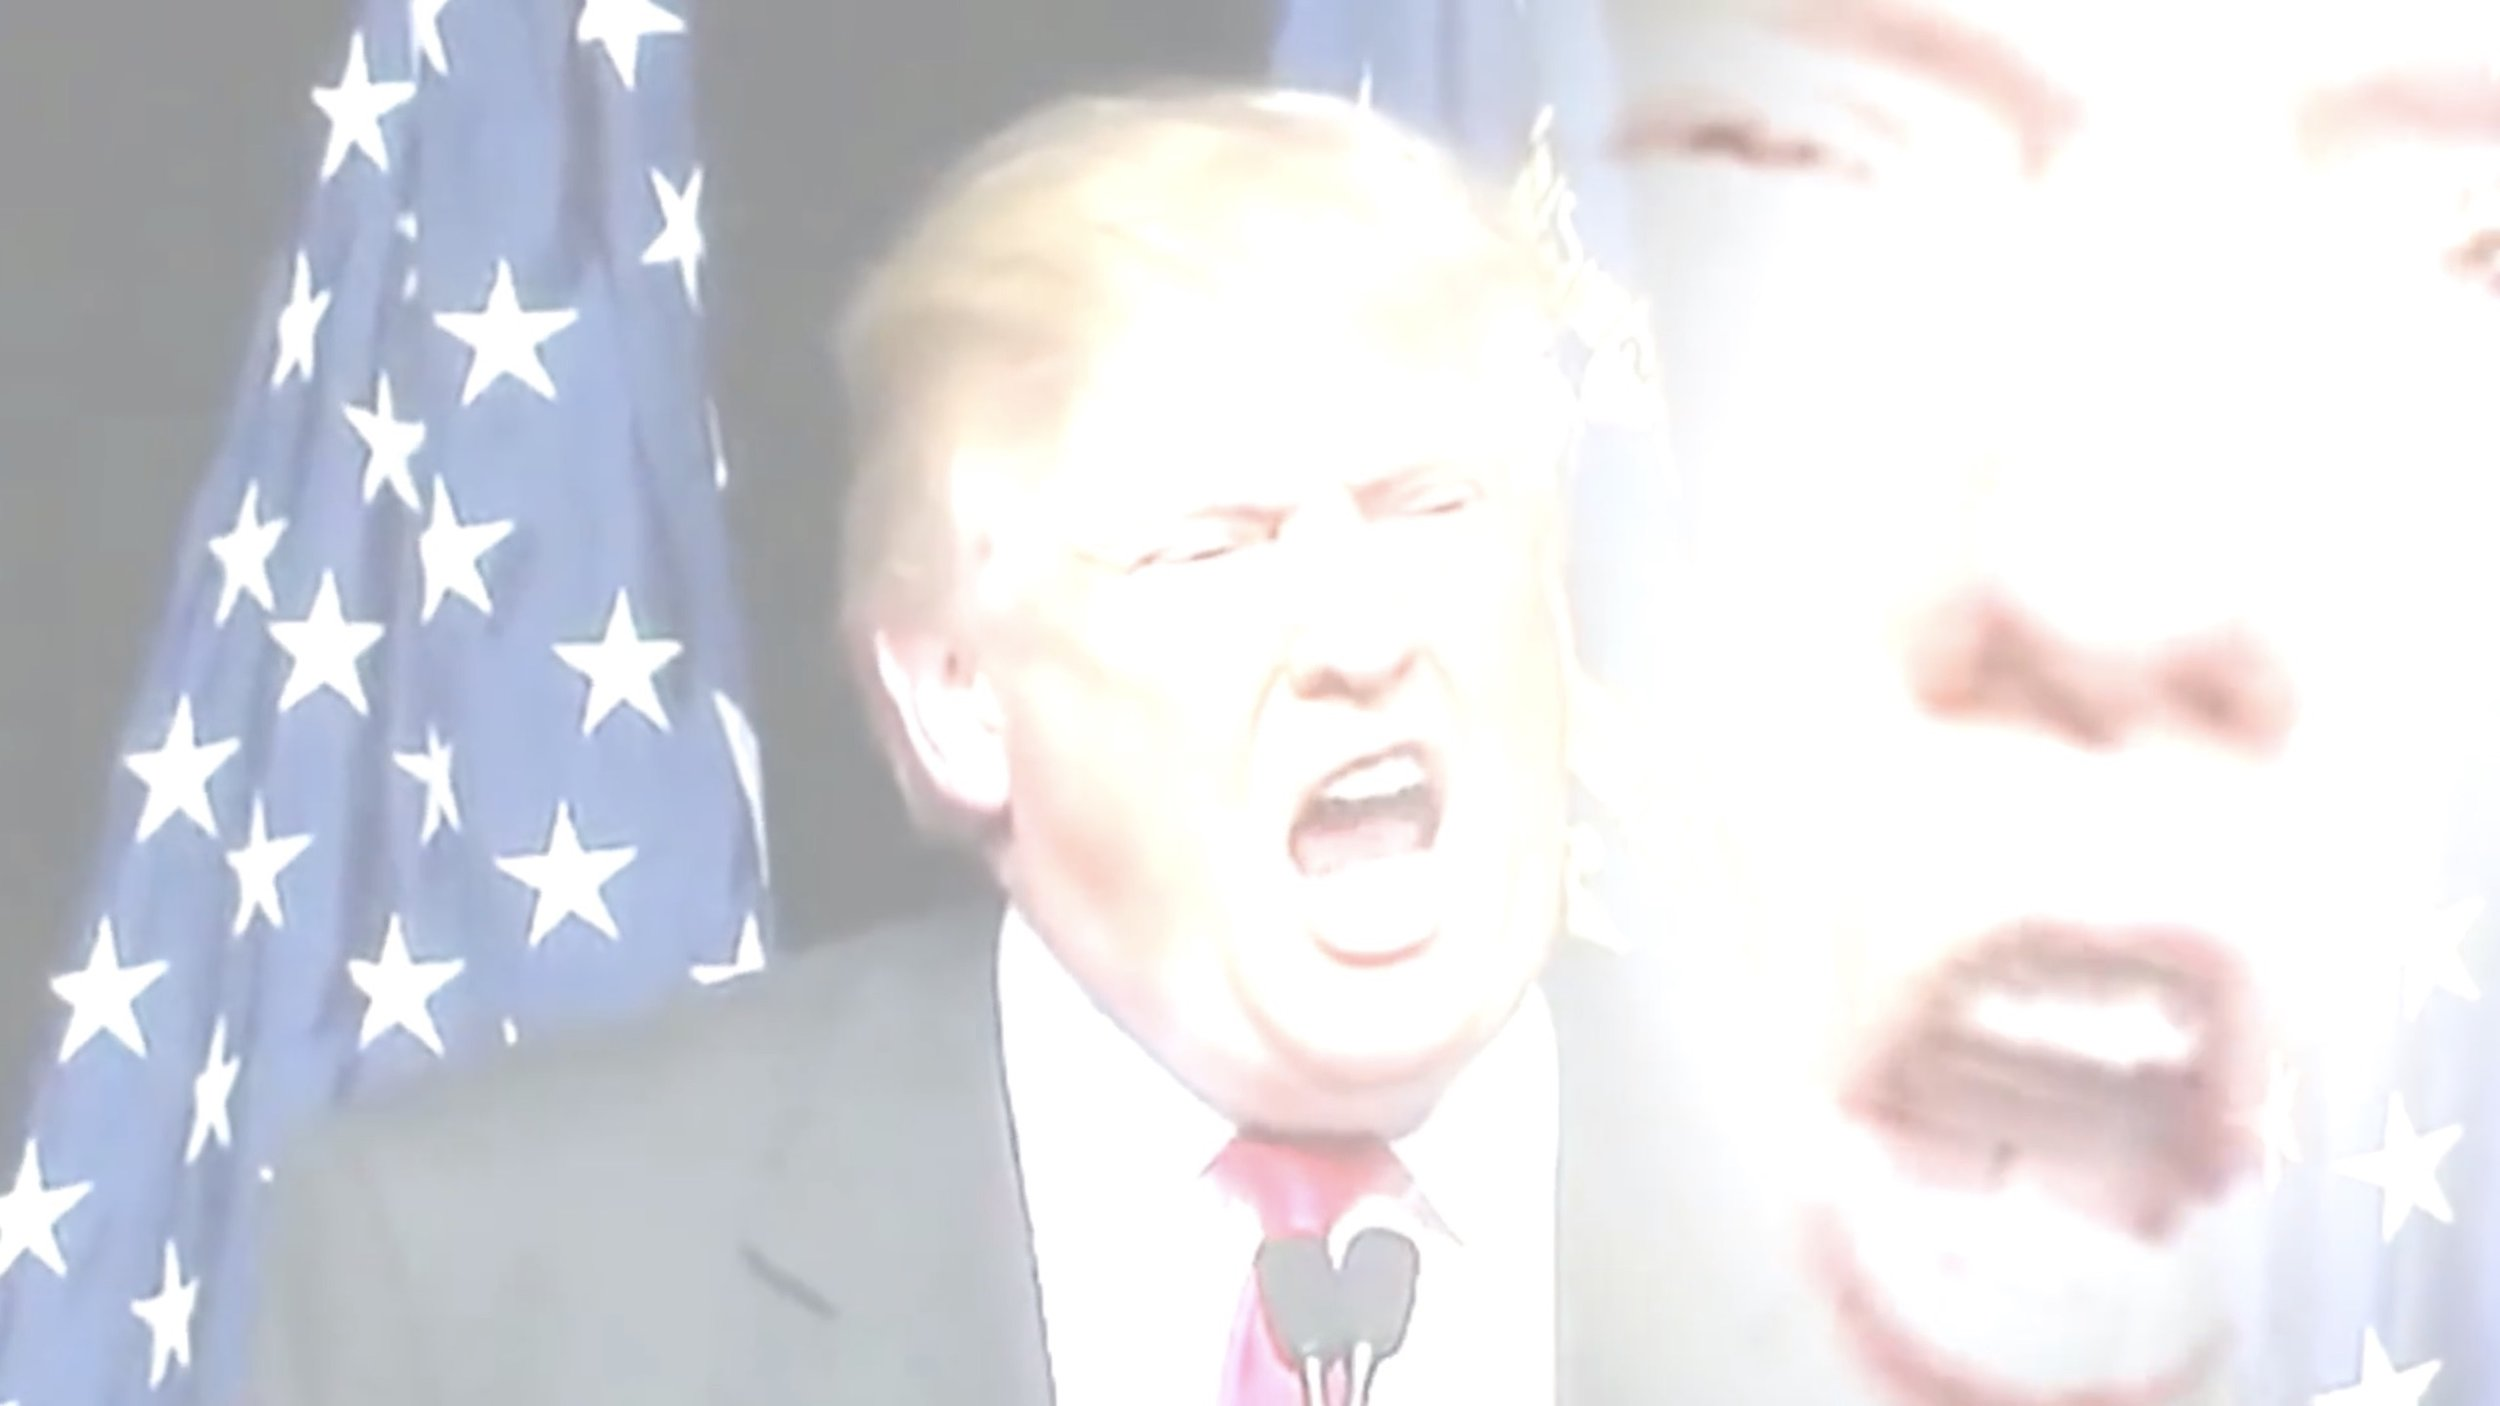 Screenshot of Trump from Placeboing's video